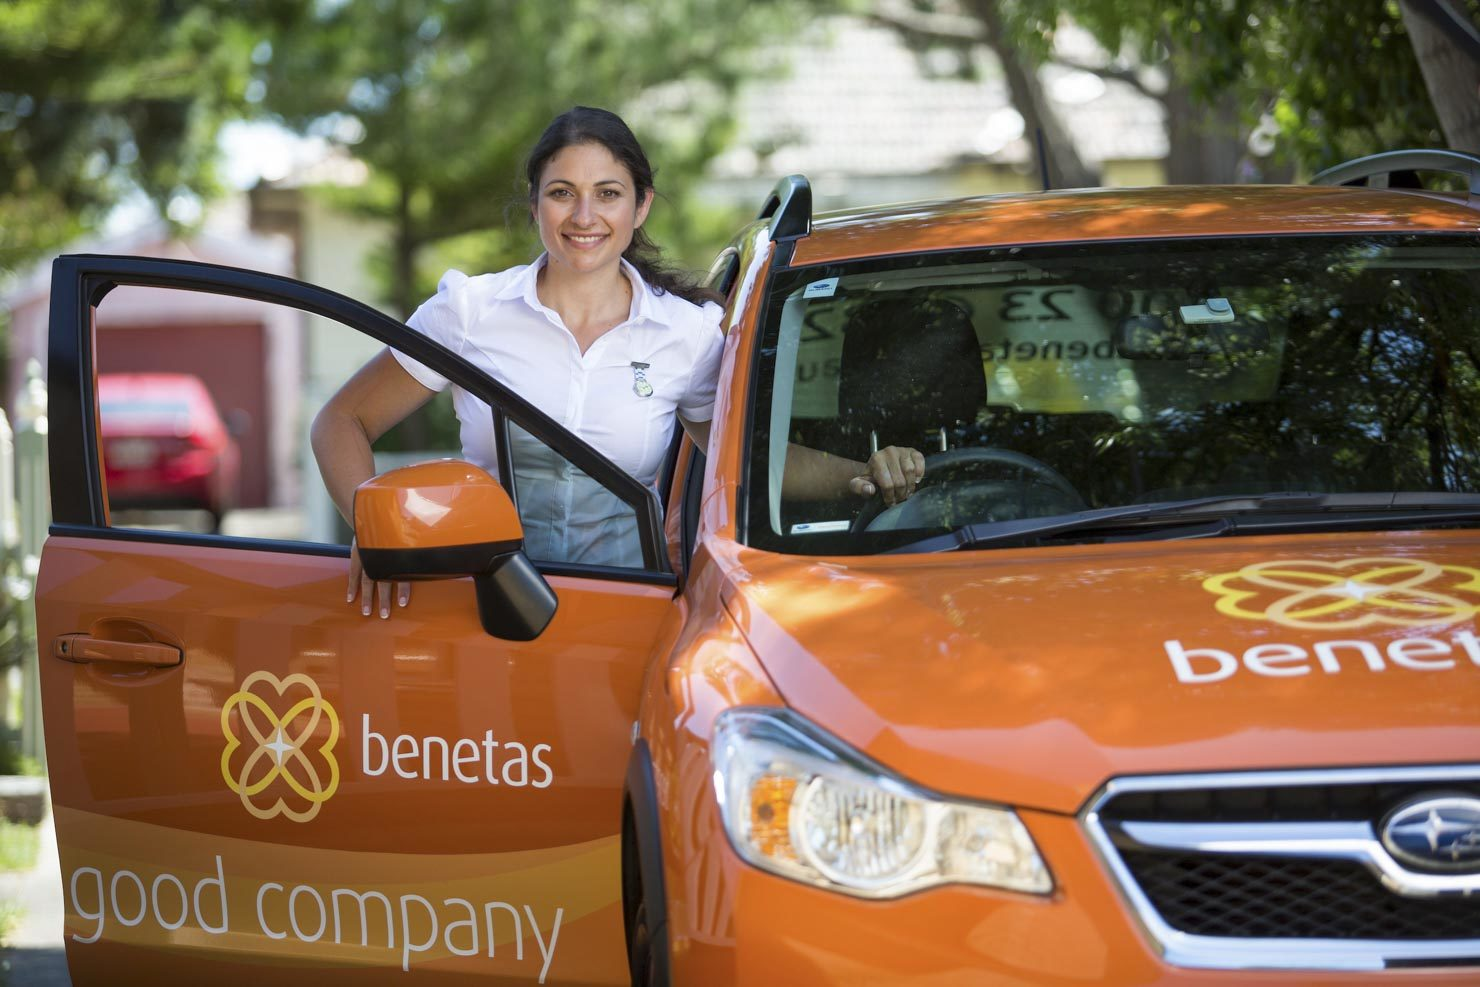 Benetas health services staff